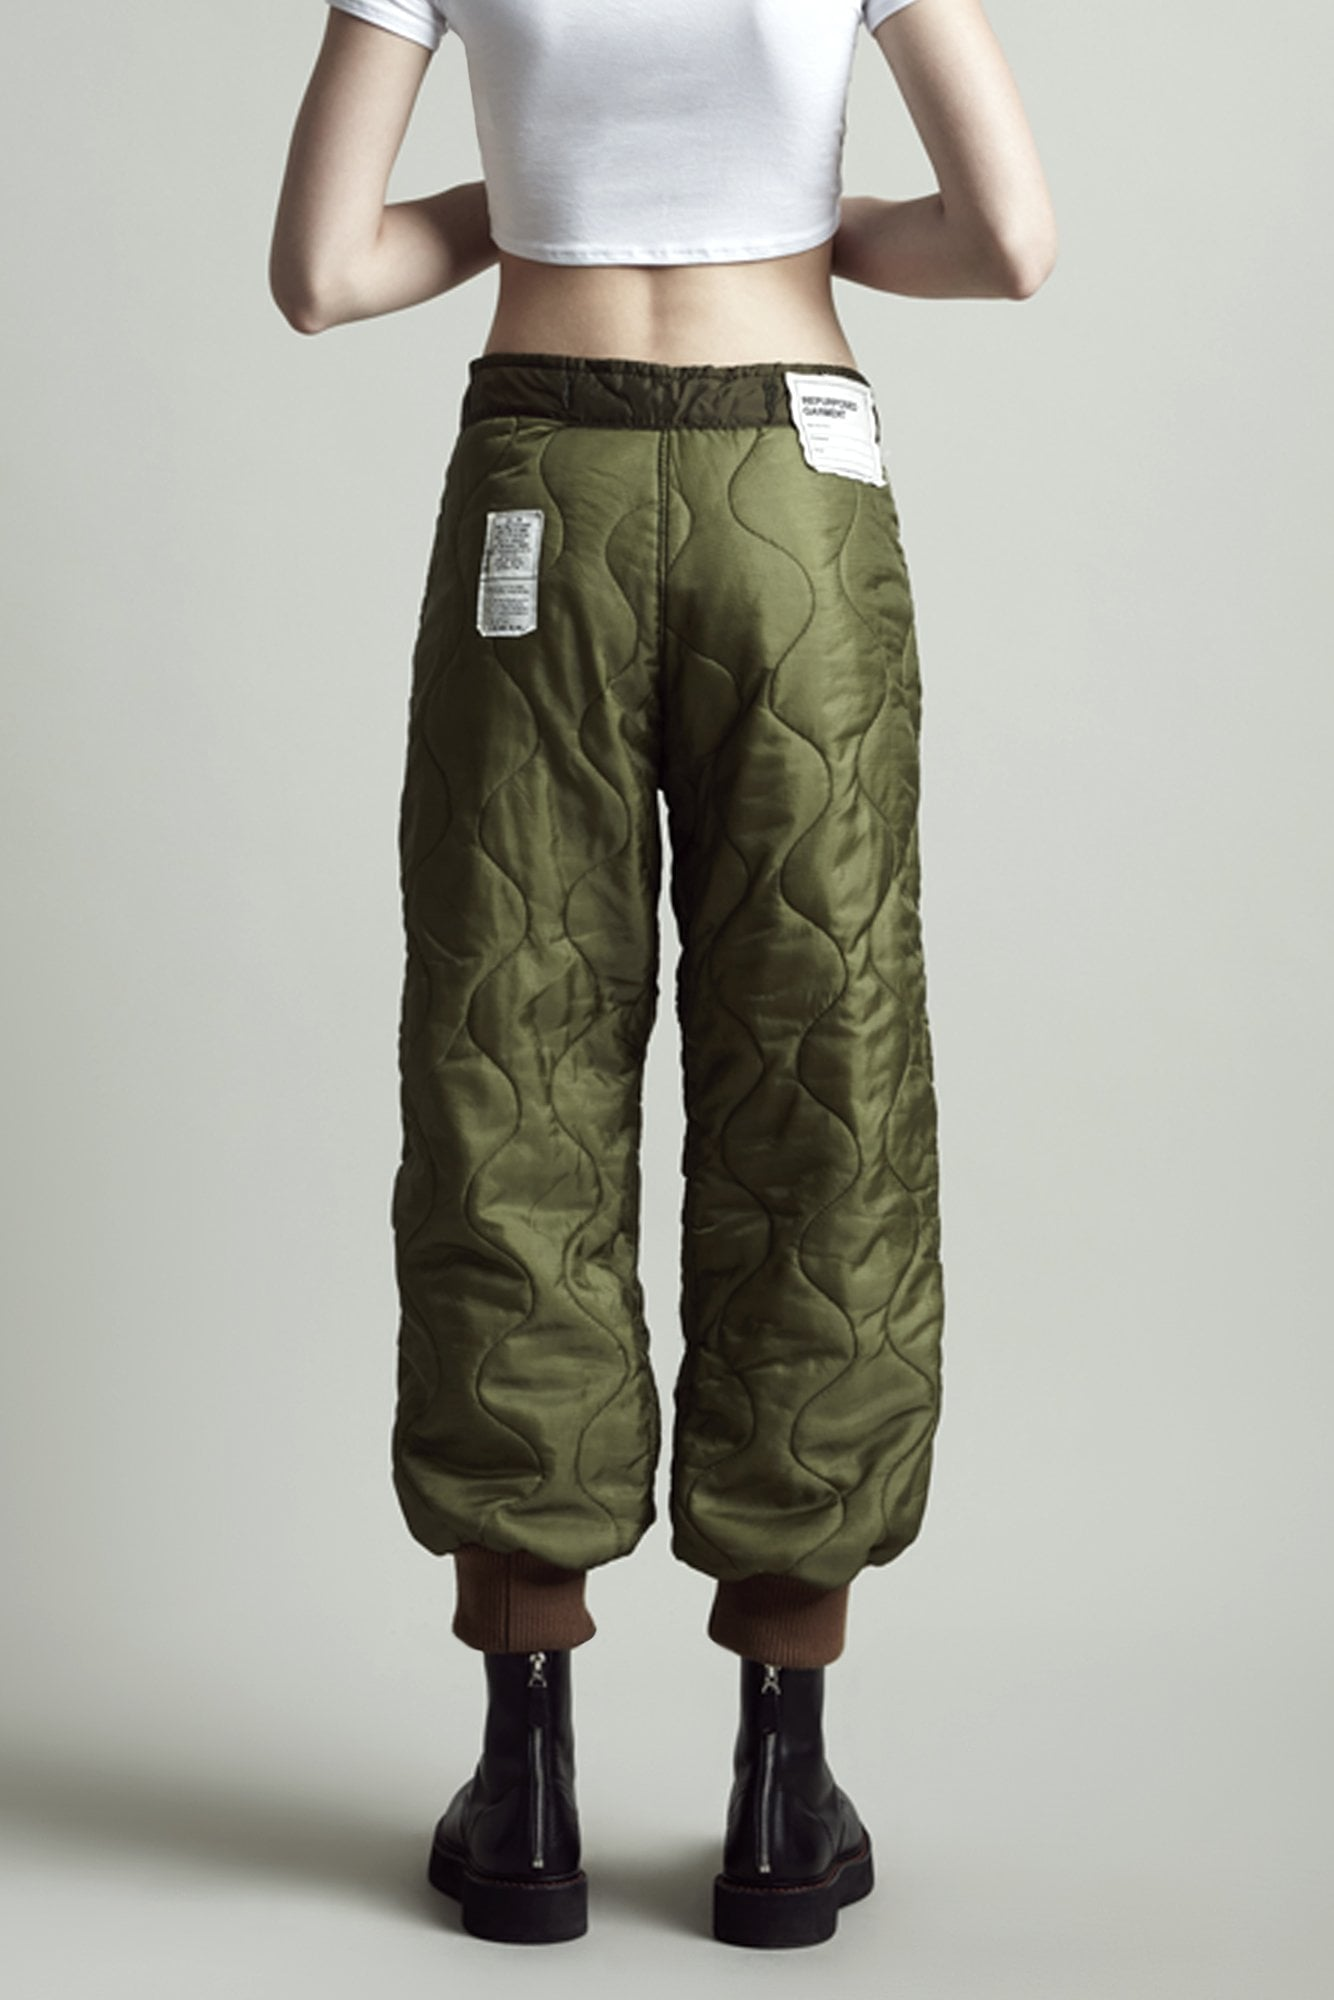 Refurbished Quilted Crossover Pant